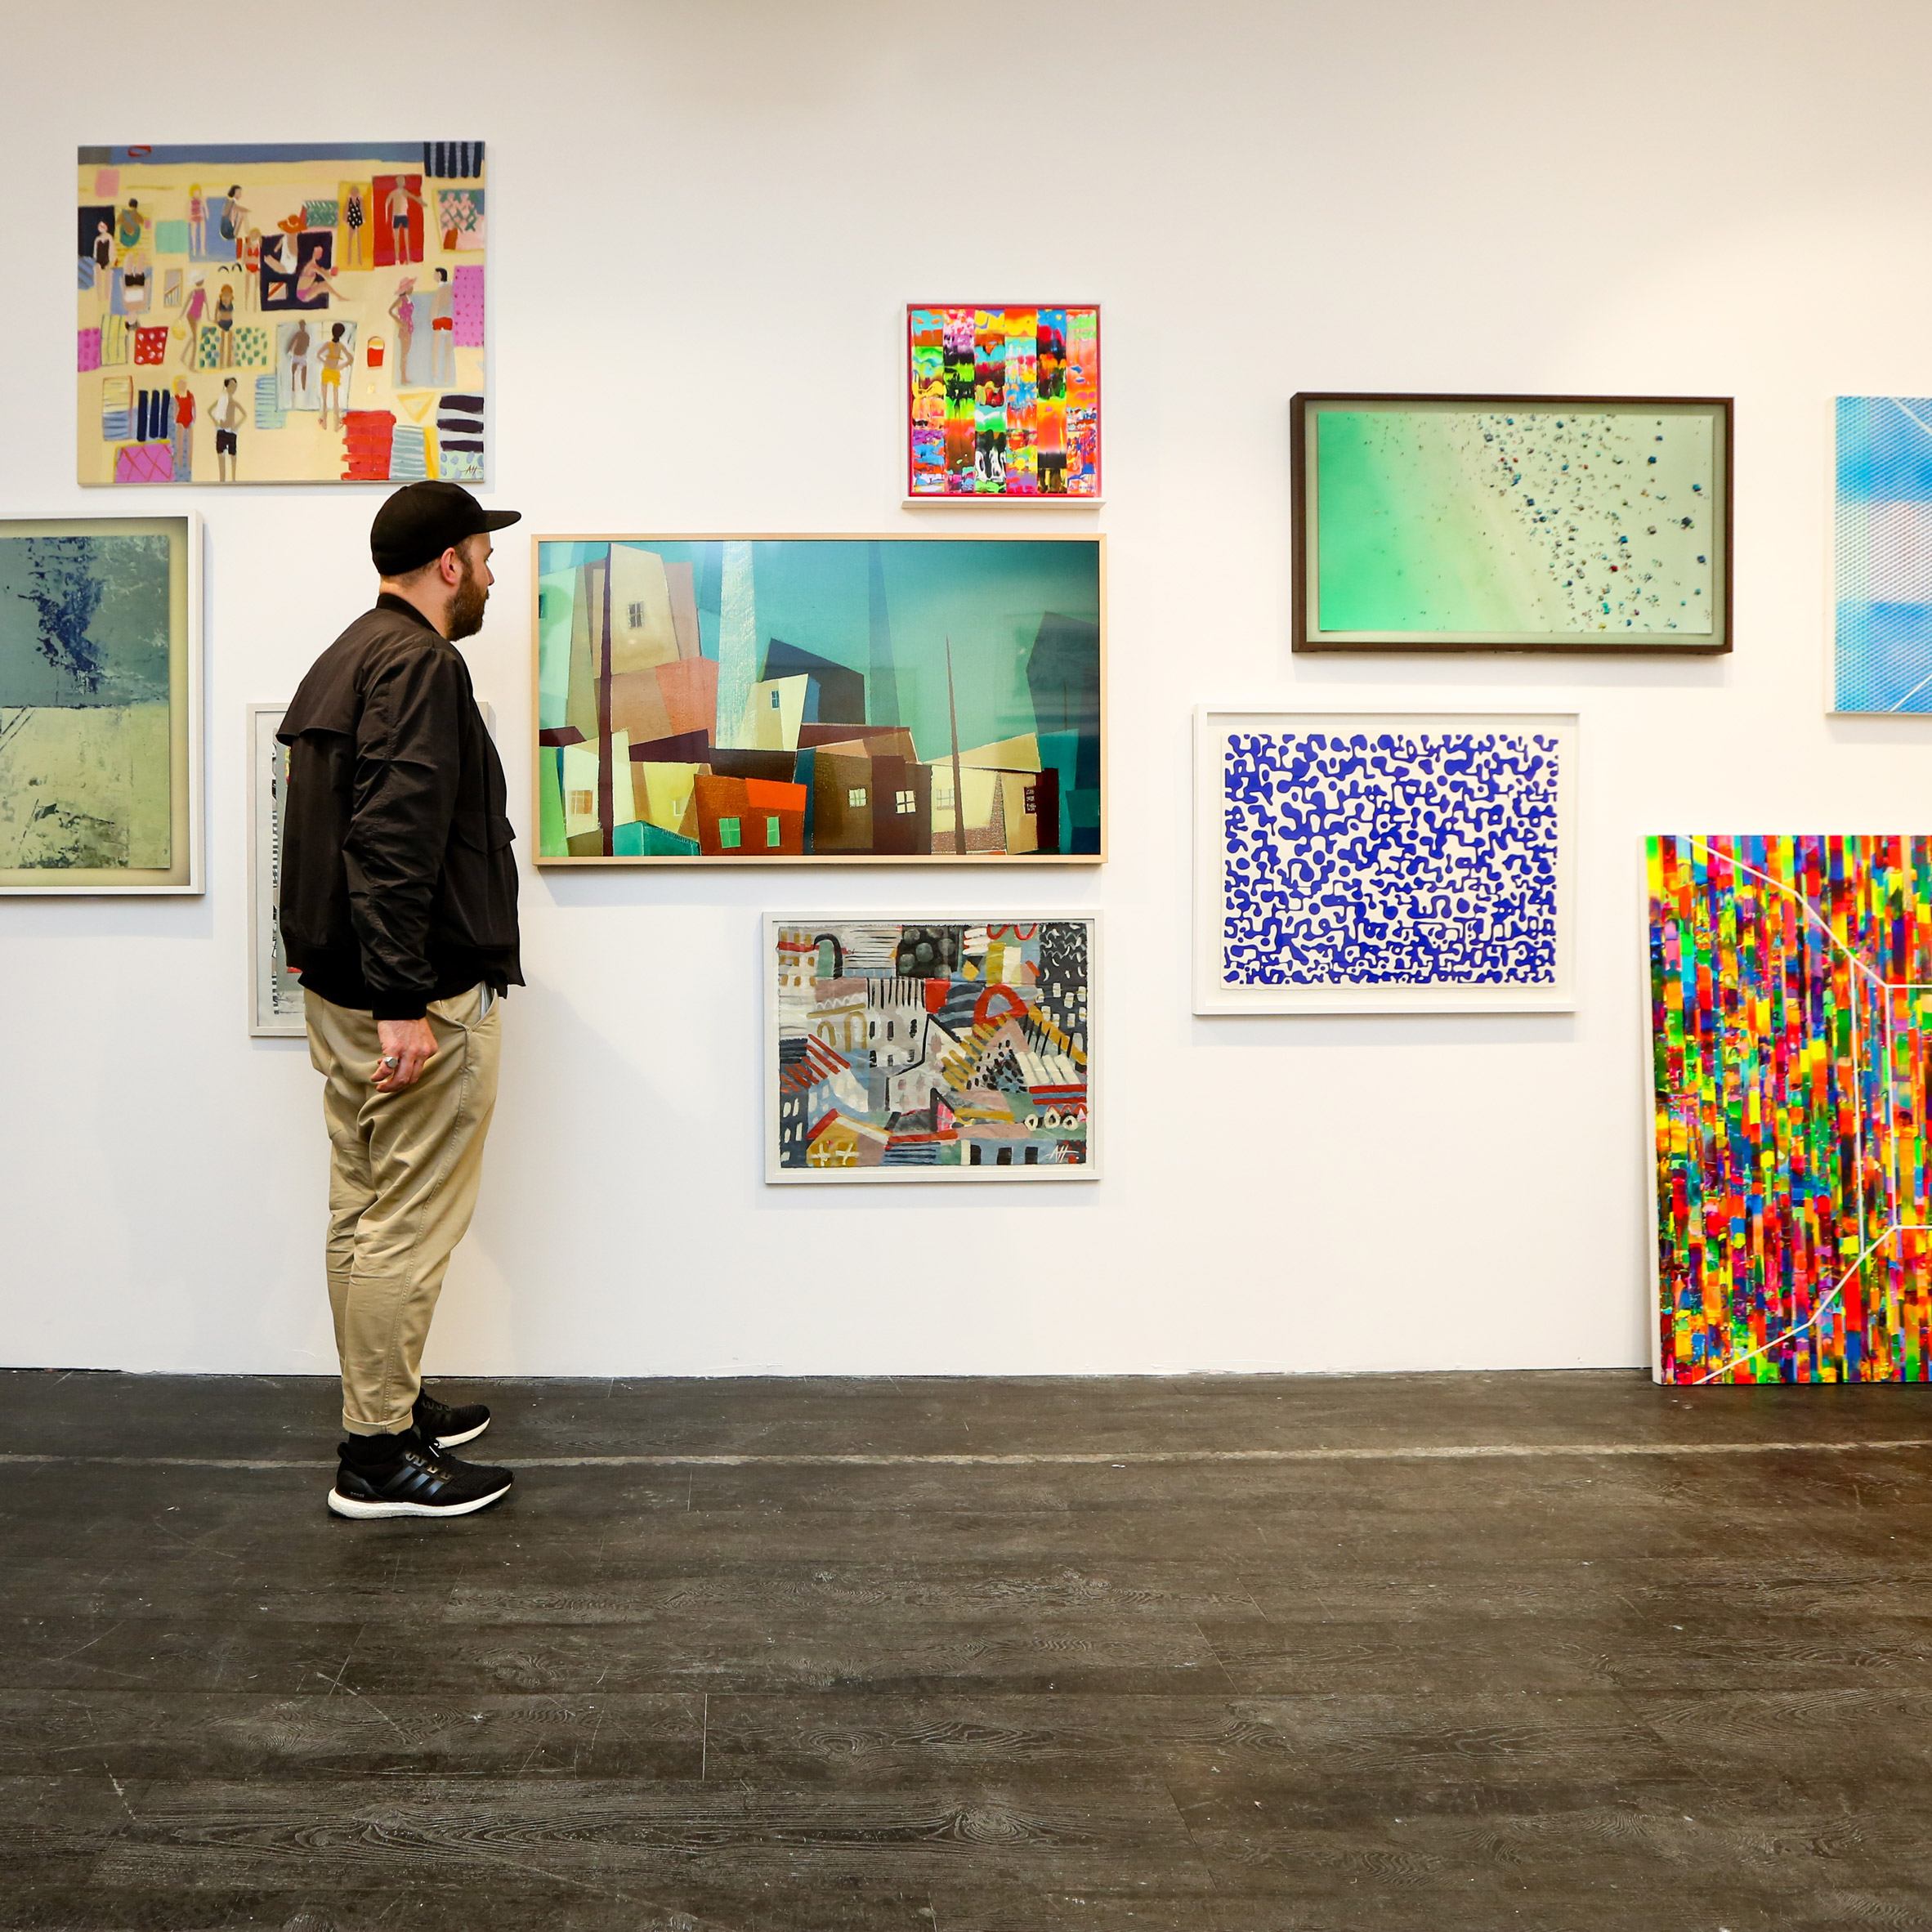 How to Advertise an Art Gallery Show advise